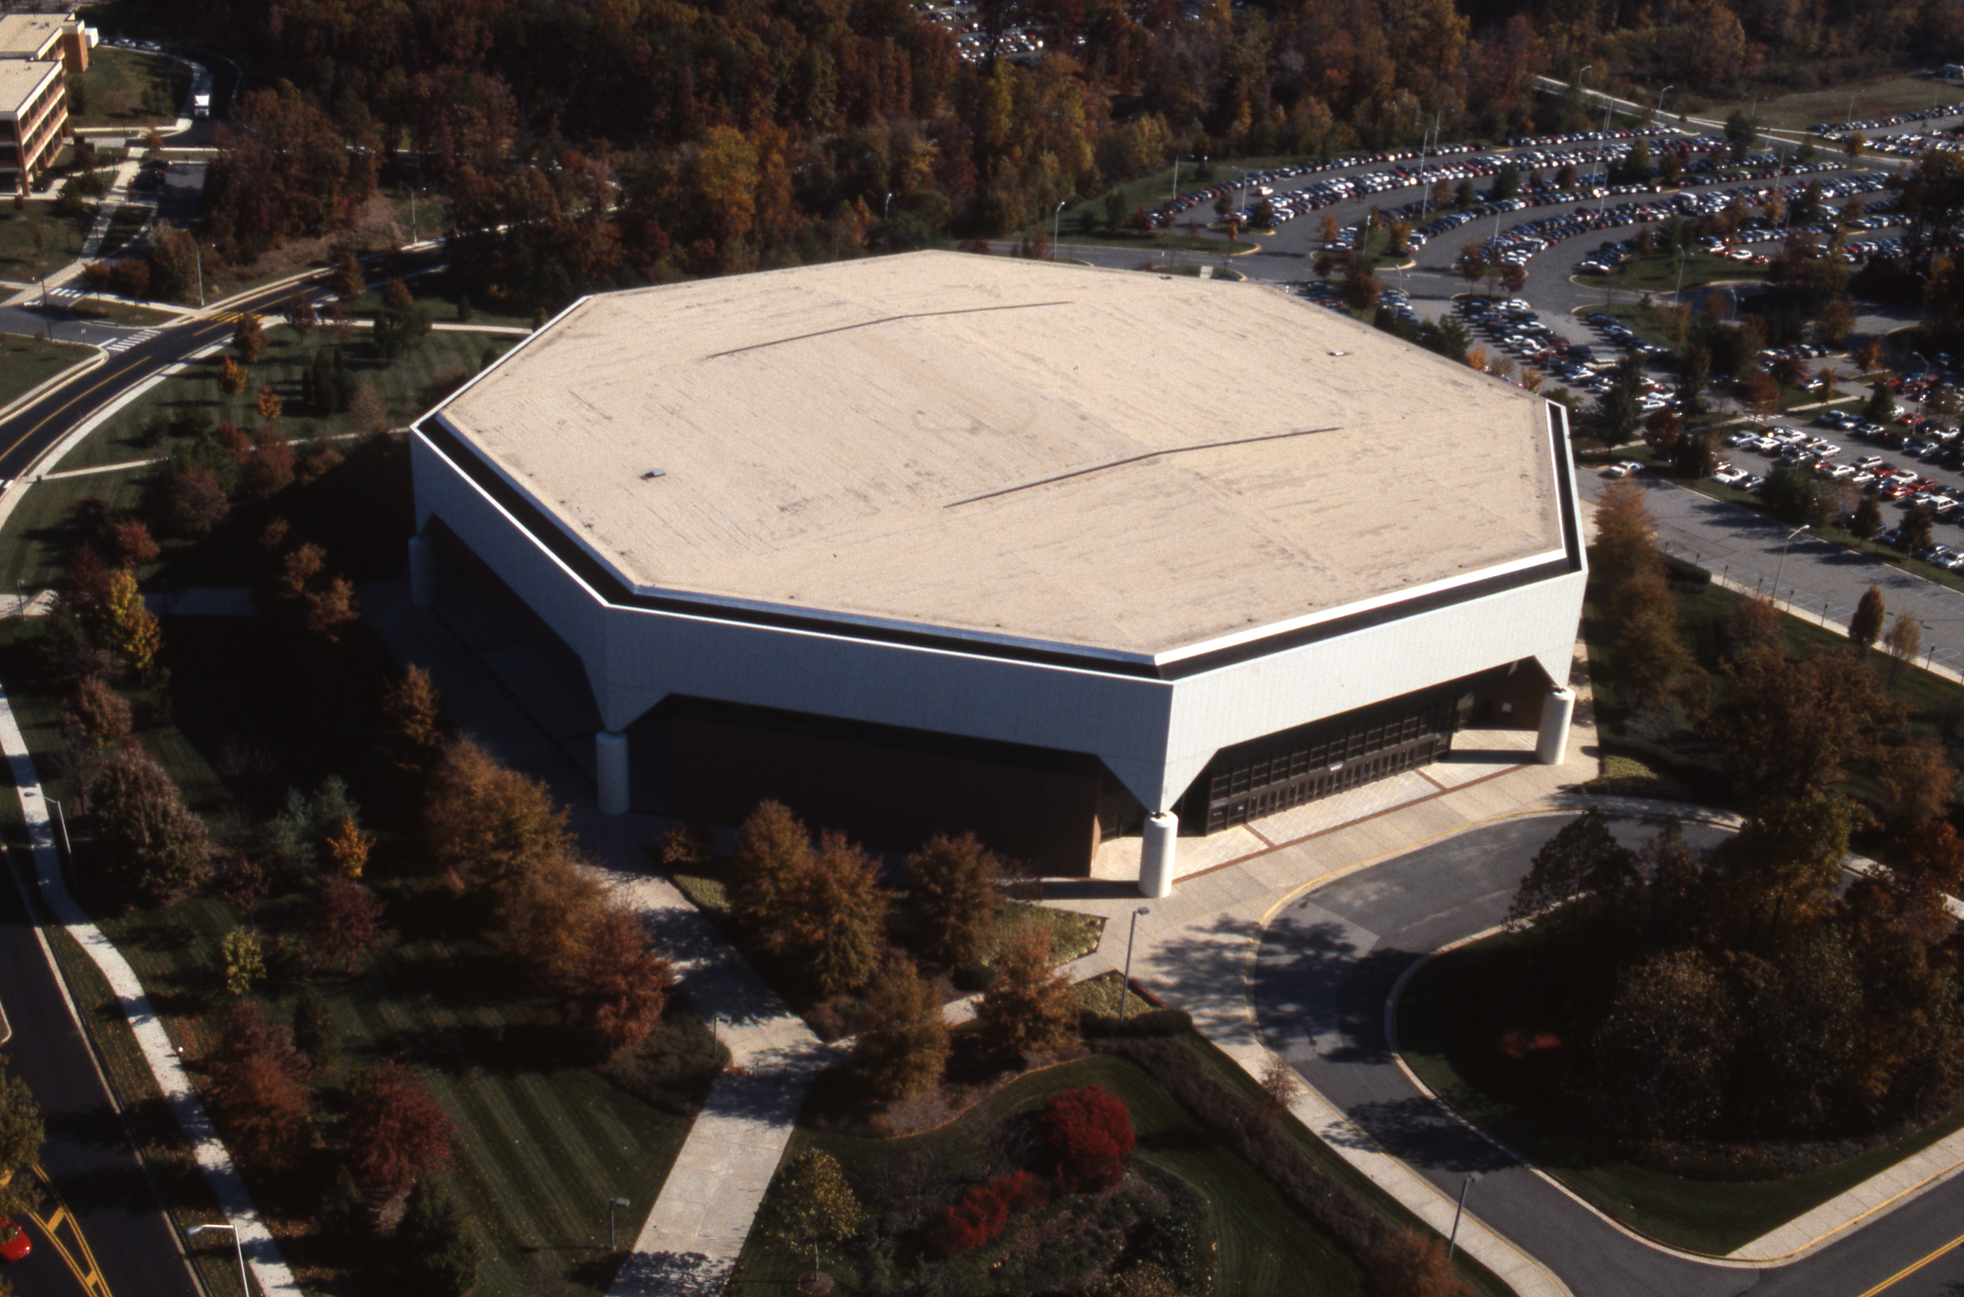 Patriot Center, ca. 1990